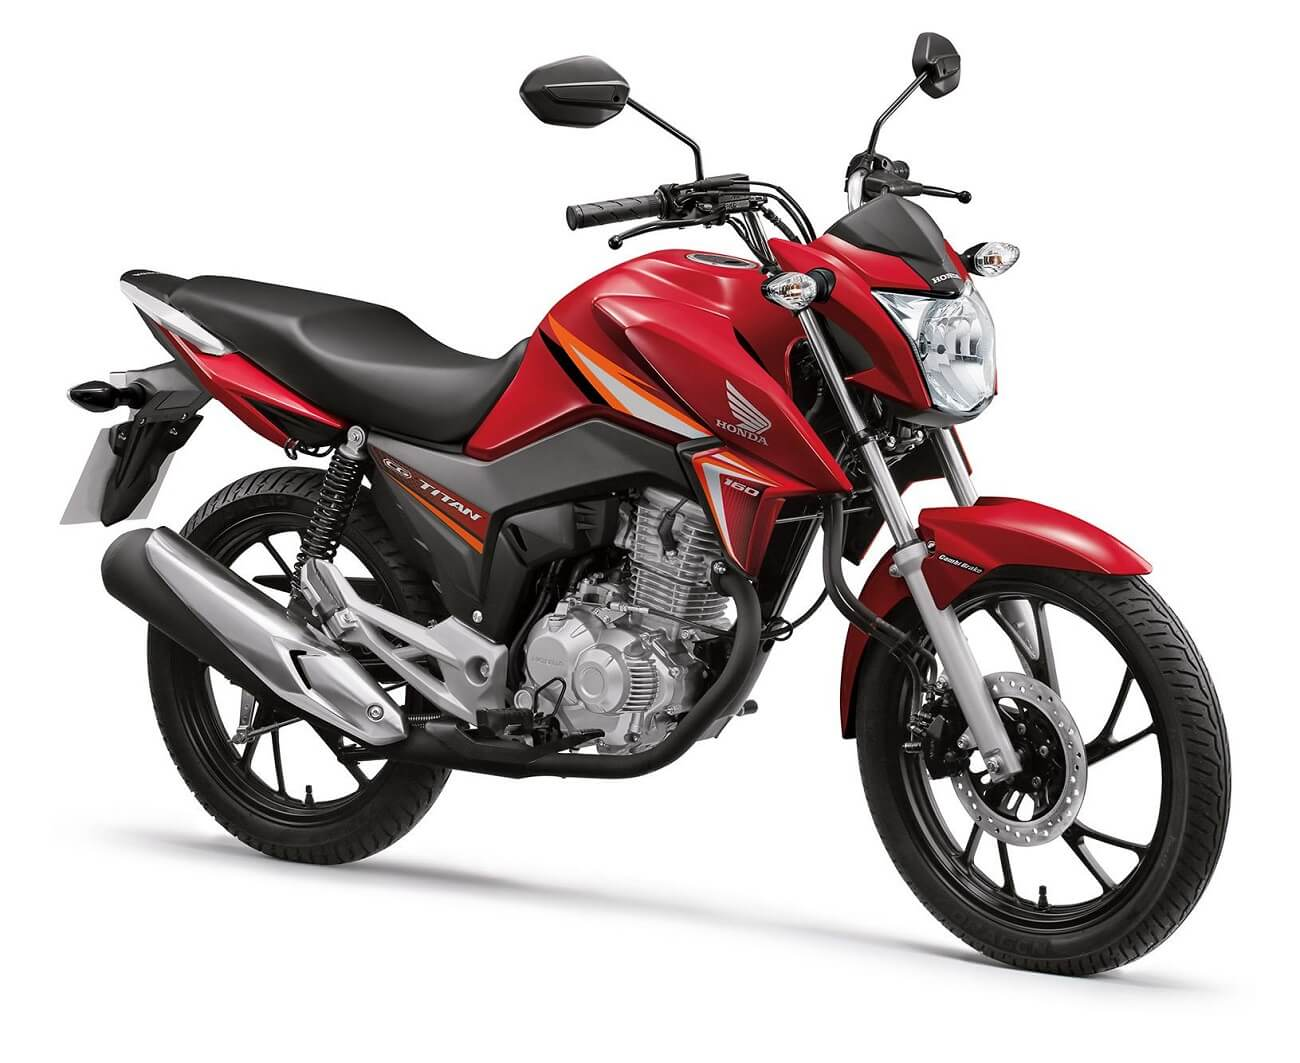 Financiamento da Honda CG 160